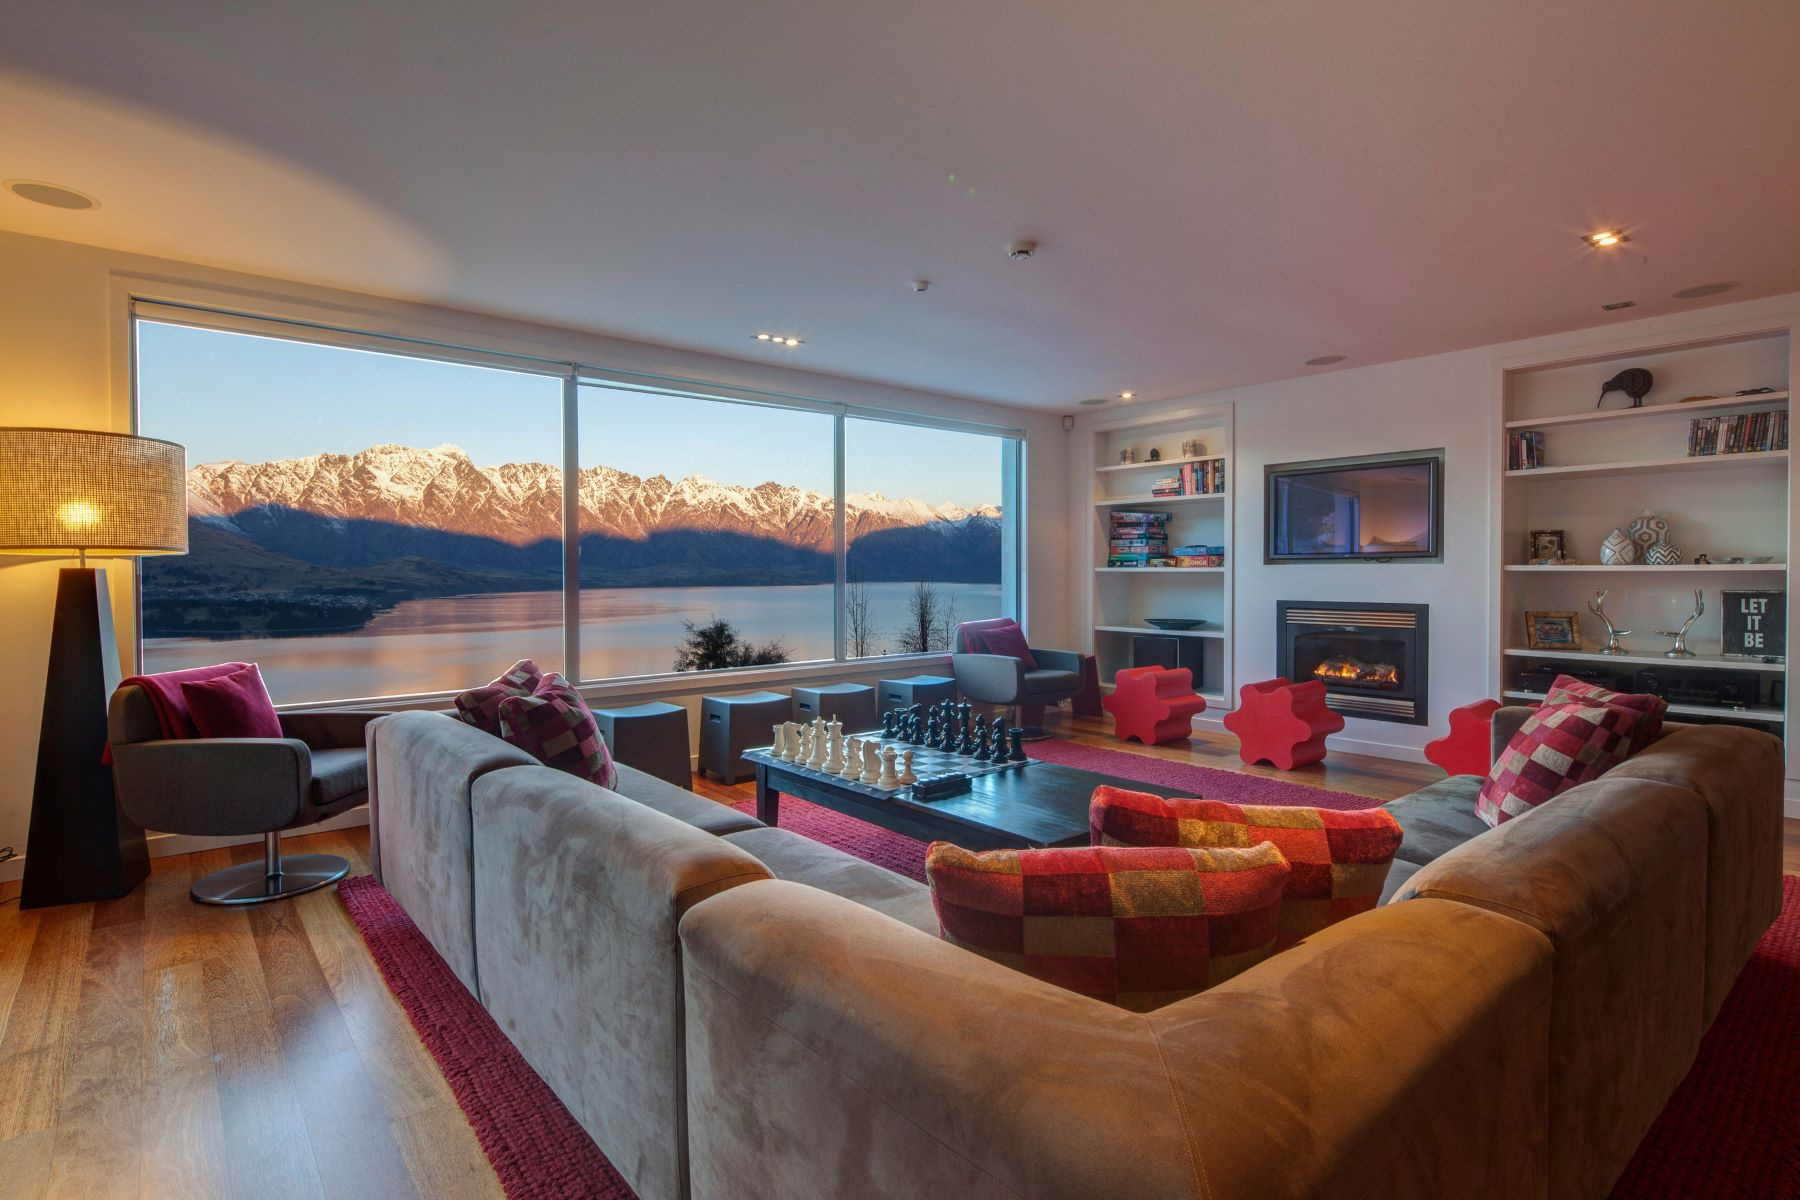 Single Family Home for Rent at Lordens Apartment 1 6 Lordens Place, Queenstown, Otago, 9300 New Zealand